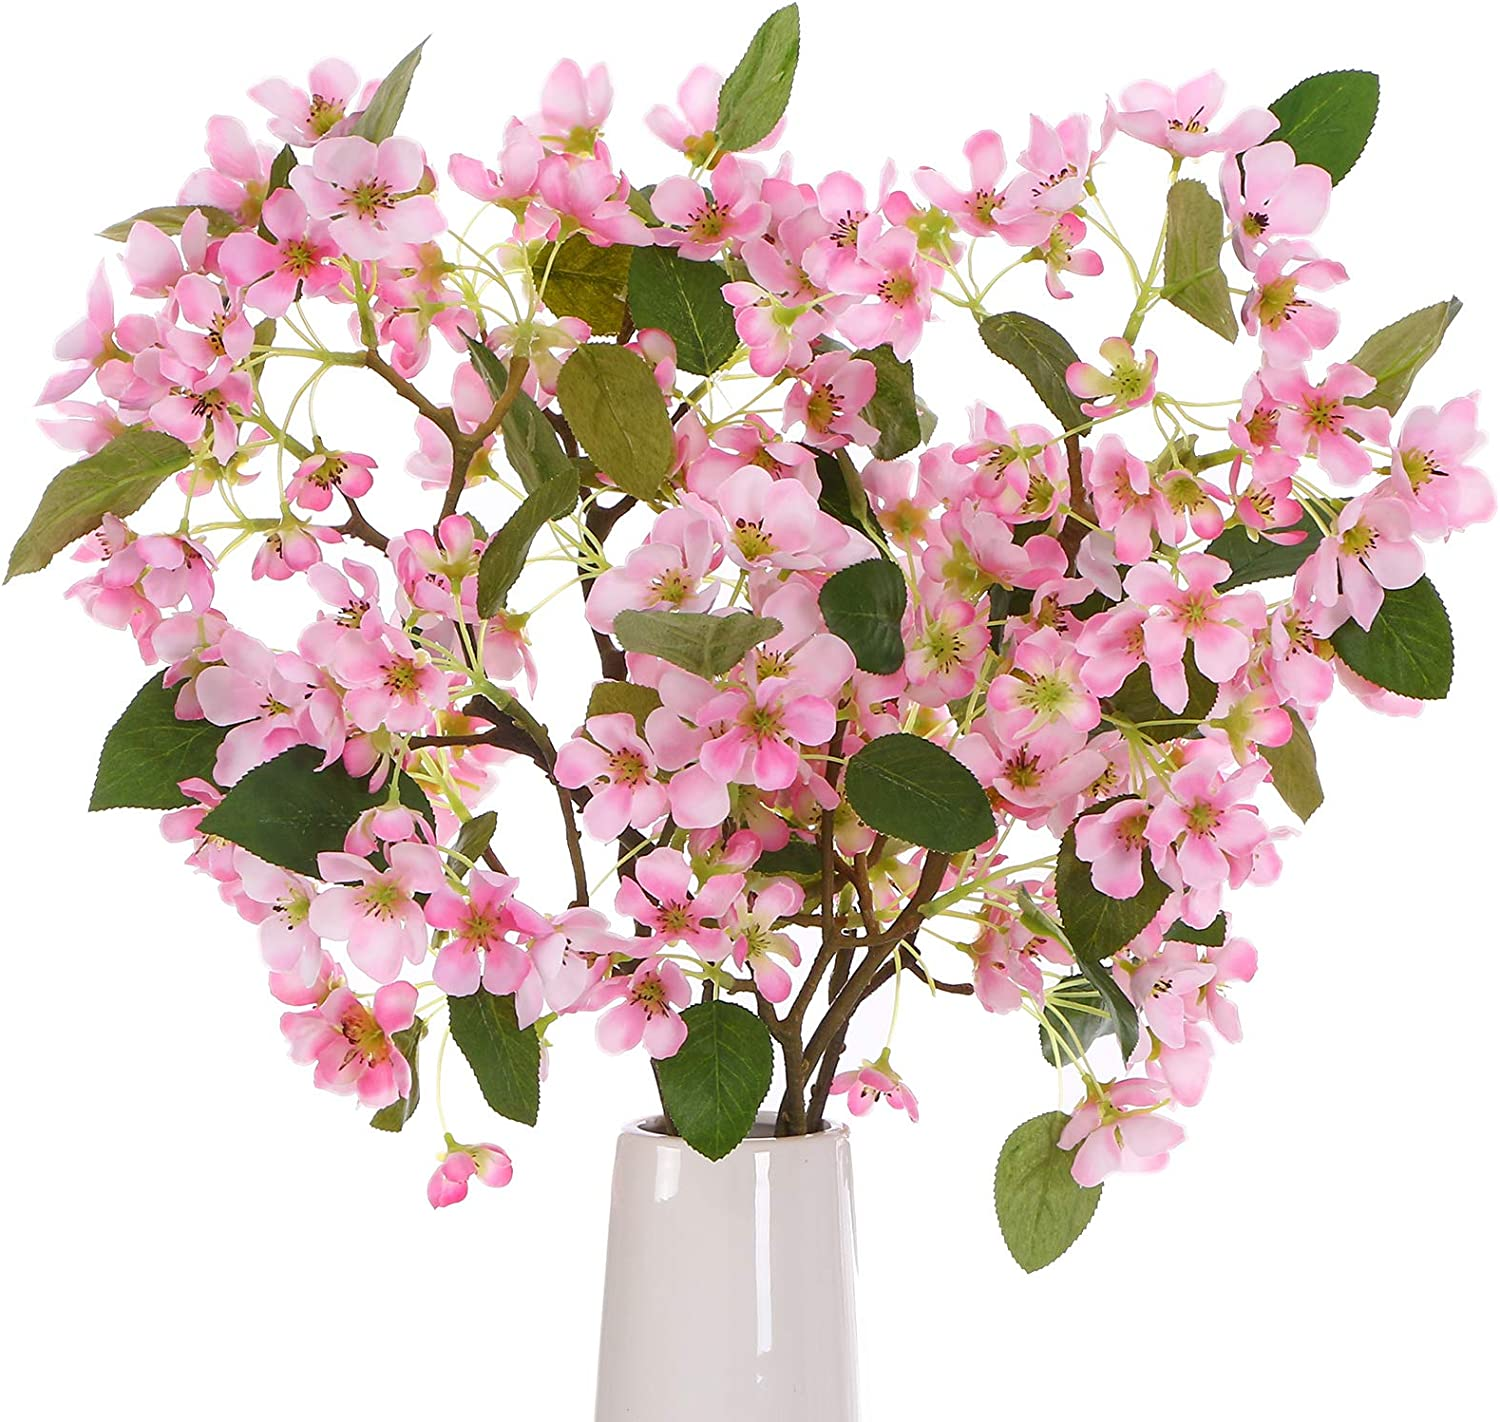 ANWBROAD Artificial Cherry Blossom Branches Cherry Blossom Flowers Faux Cherry Blossom 3 PACK Silk Sakura Flower Fresh Real Touch Flowers Realistic Home Wedding Decoration Floral Arrangement ULAF04PP